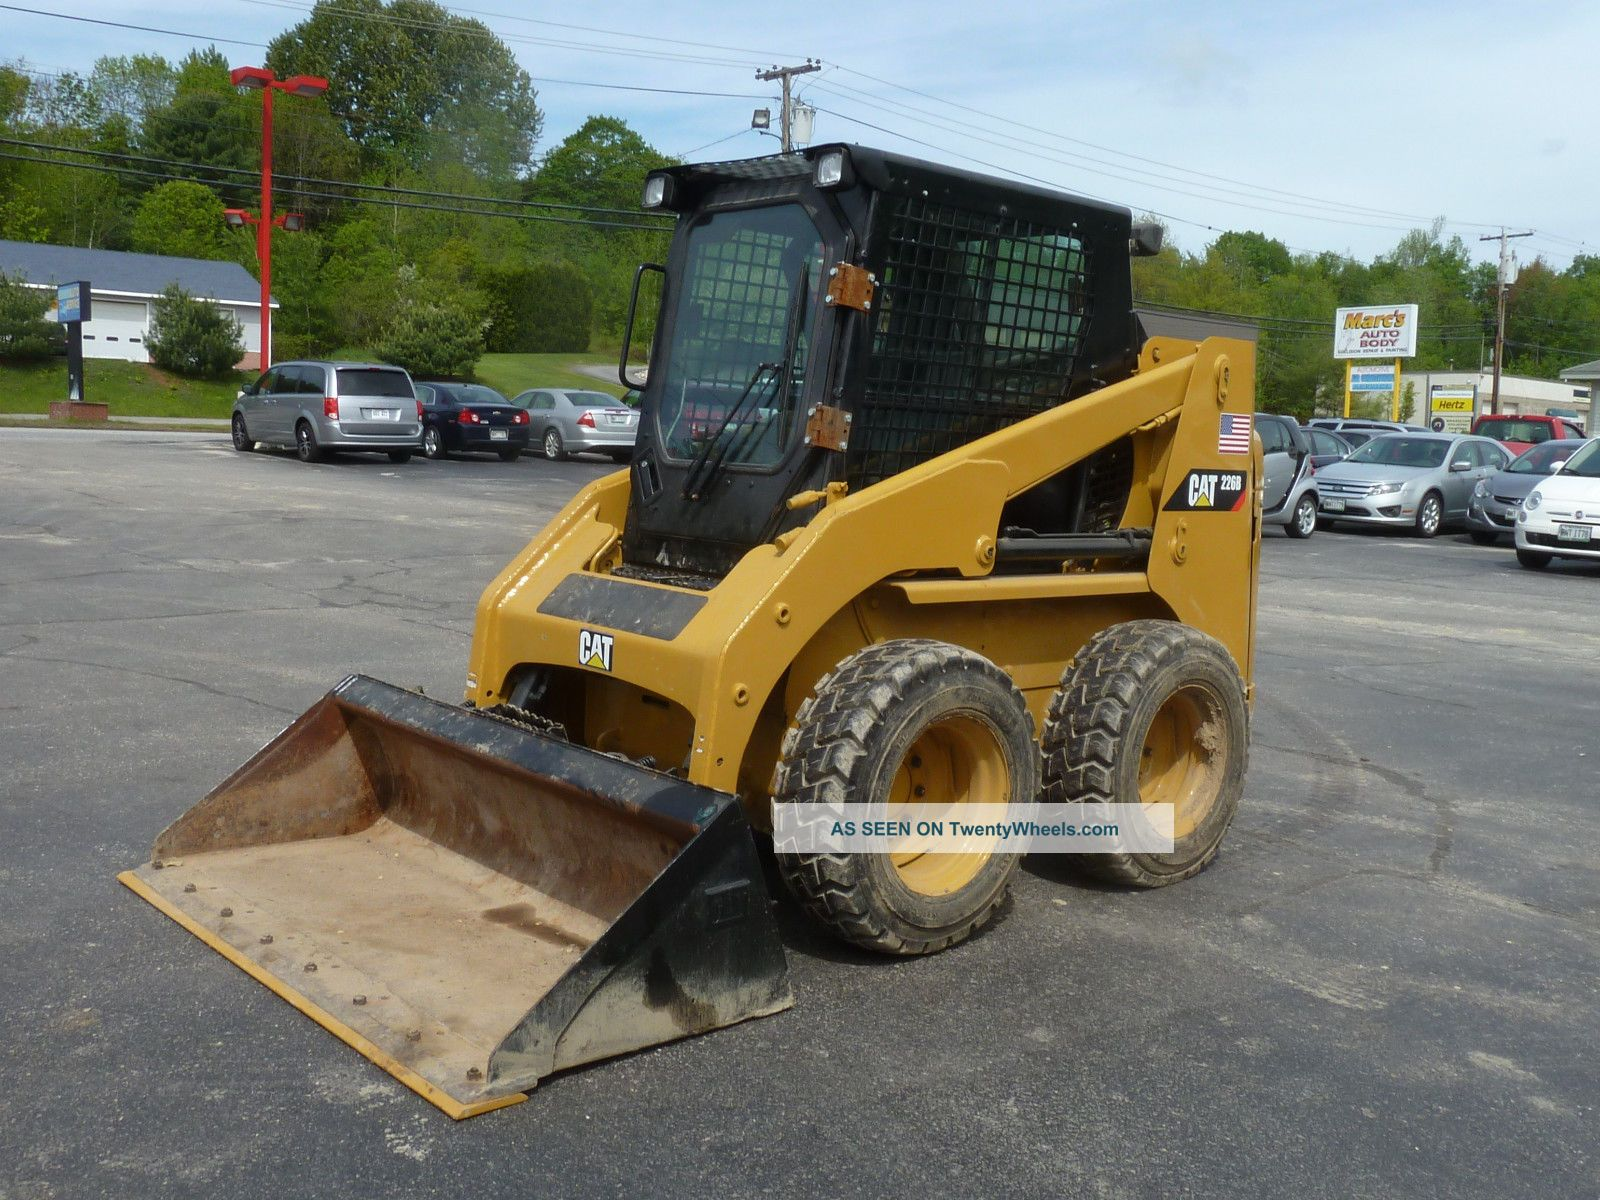 1999 Caterpillar 226 Skid Steer Skid Steer Loaders photo